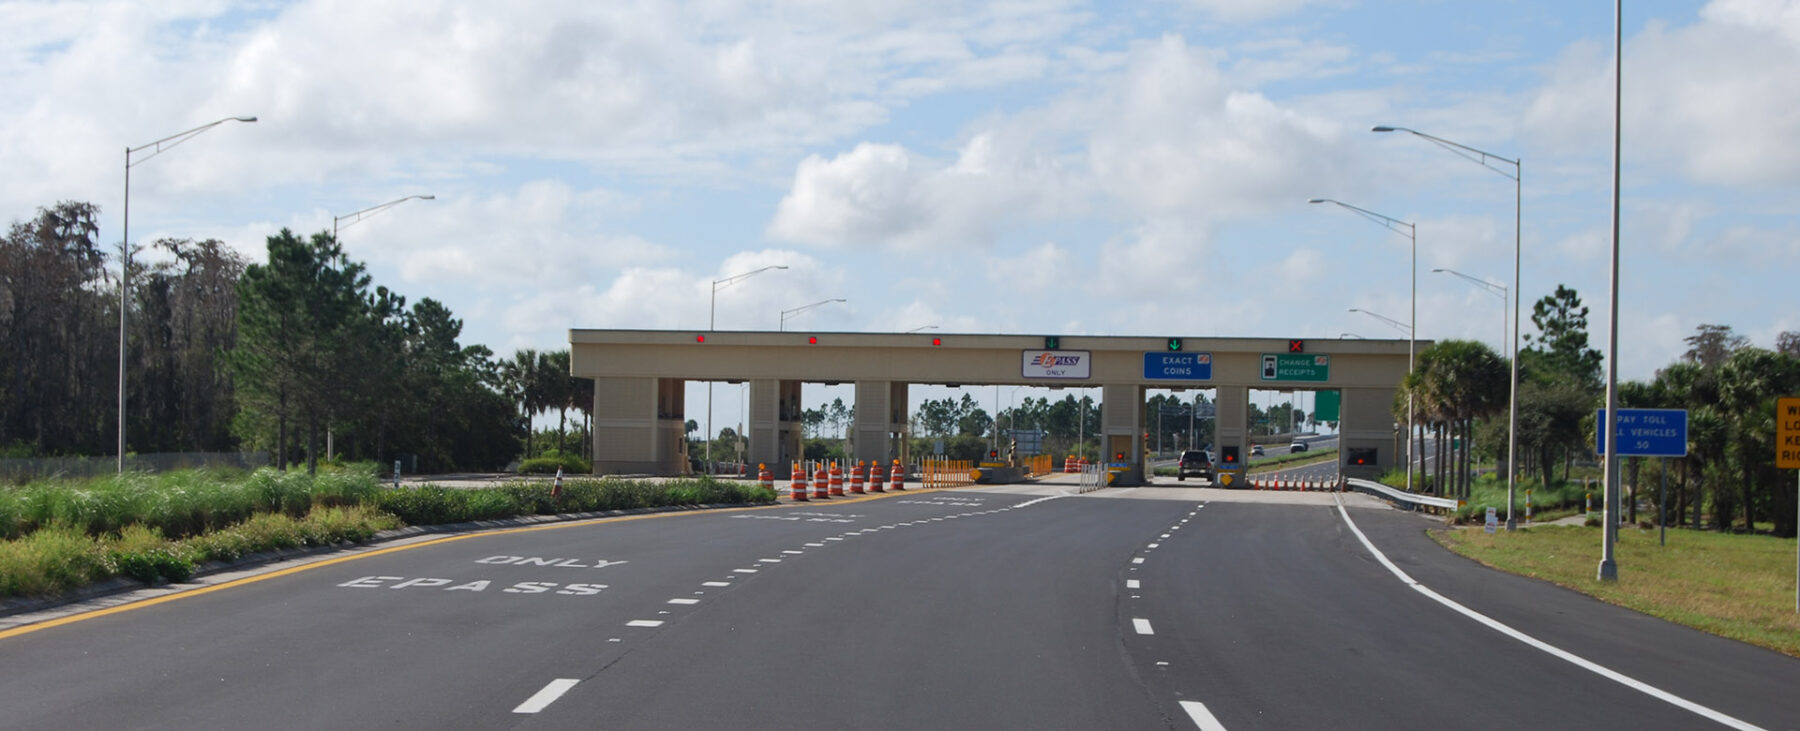 Central Florida Expressway toll plaza with E-PASS, exact change, and change/receipts lanes